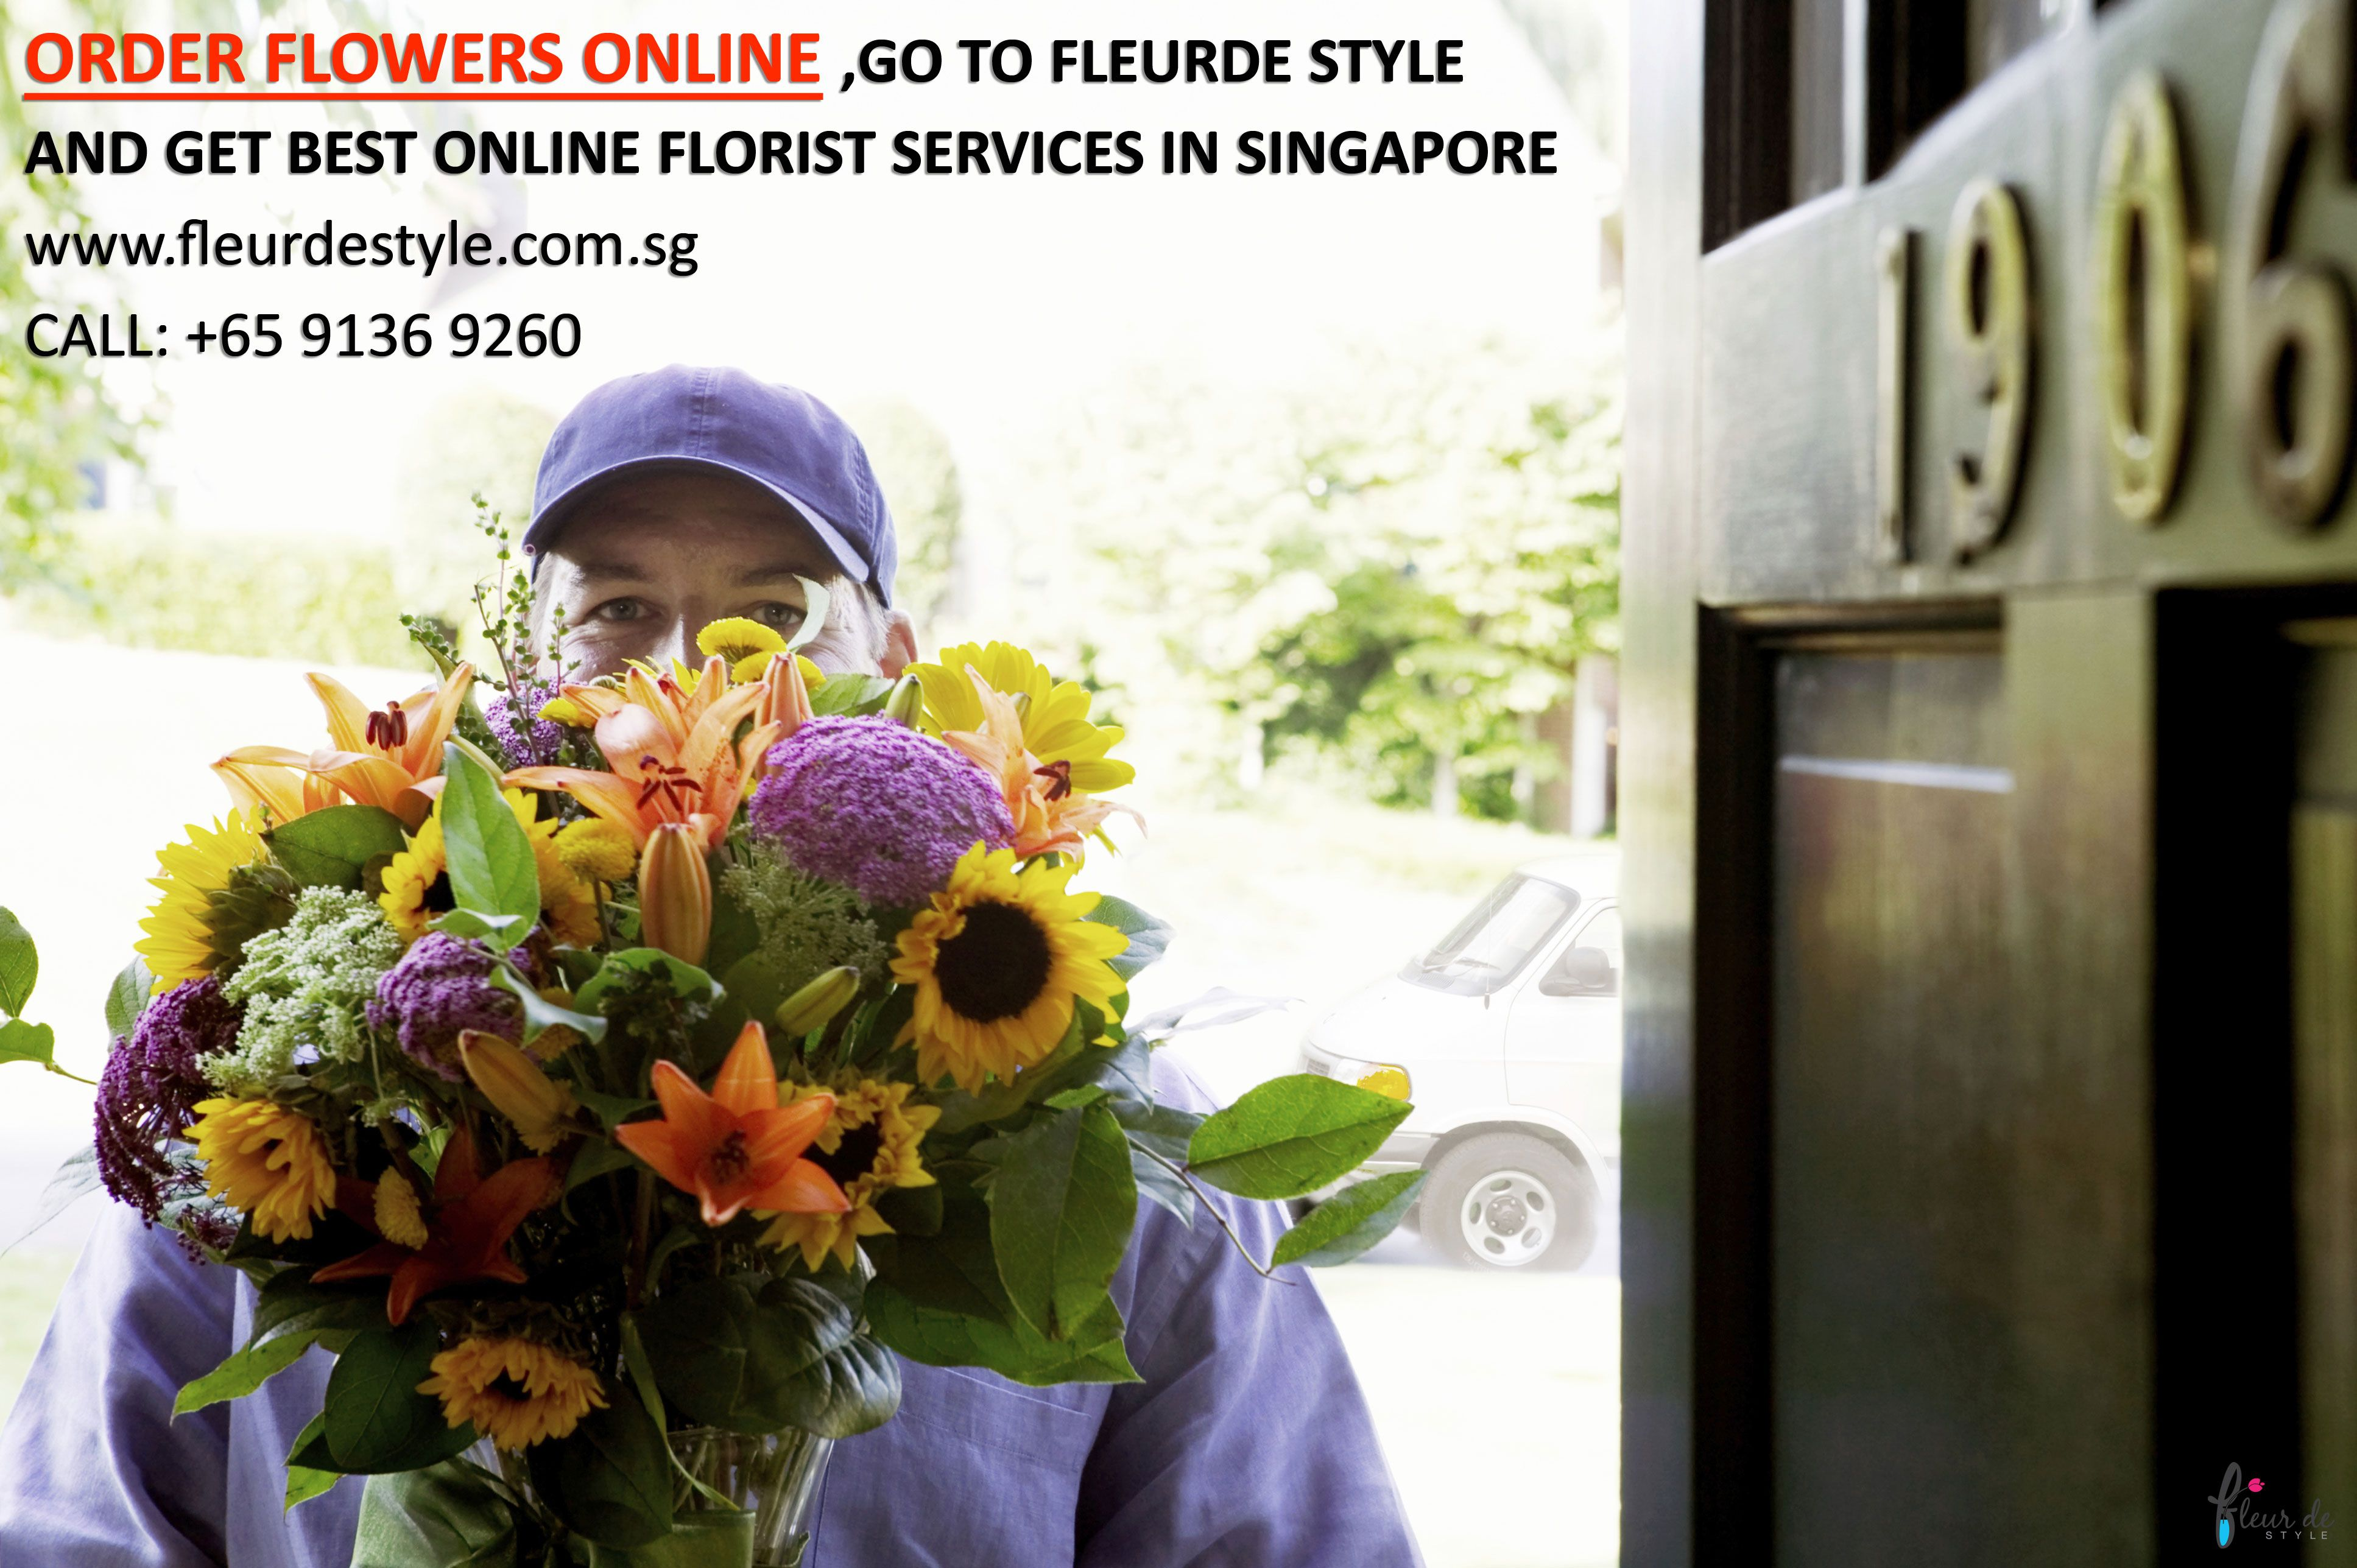 Pin By Fleurde Style On Flowers Online Singapore Pinterest